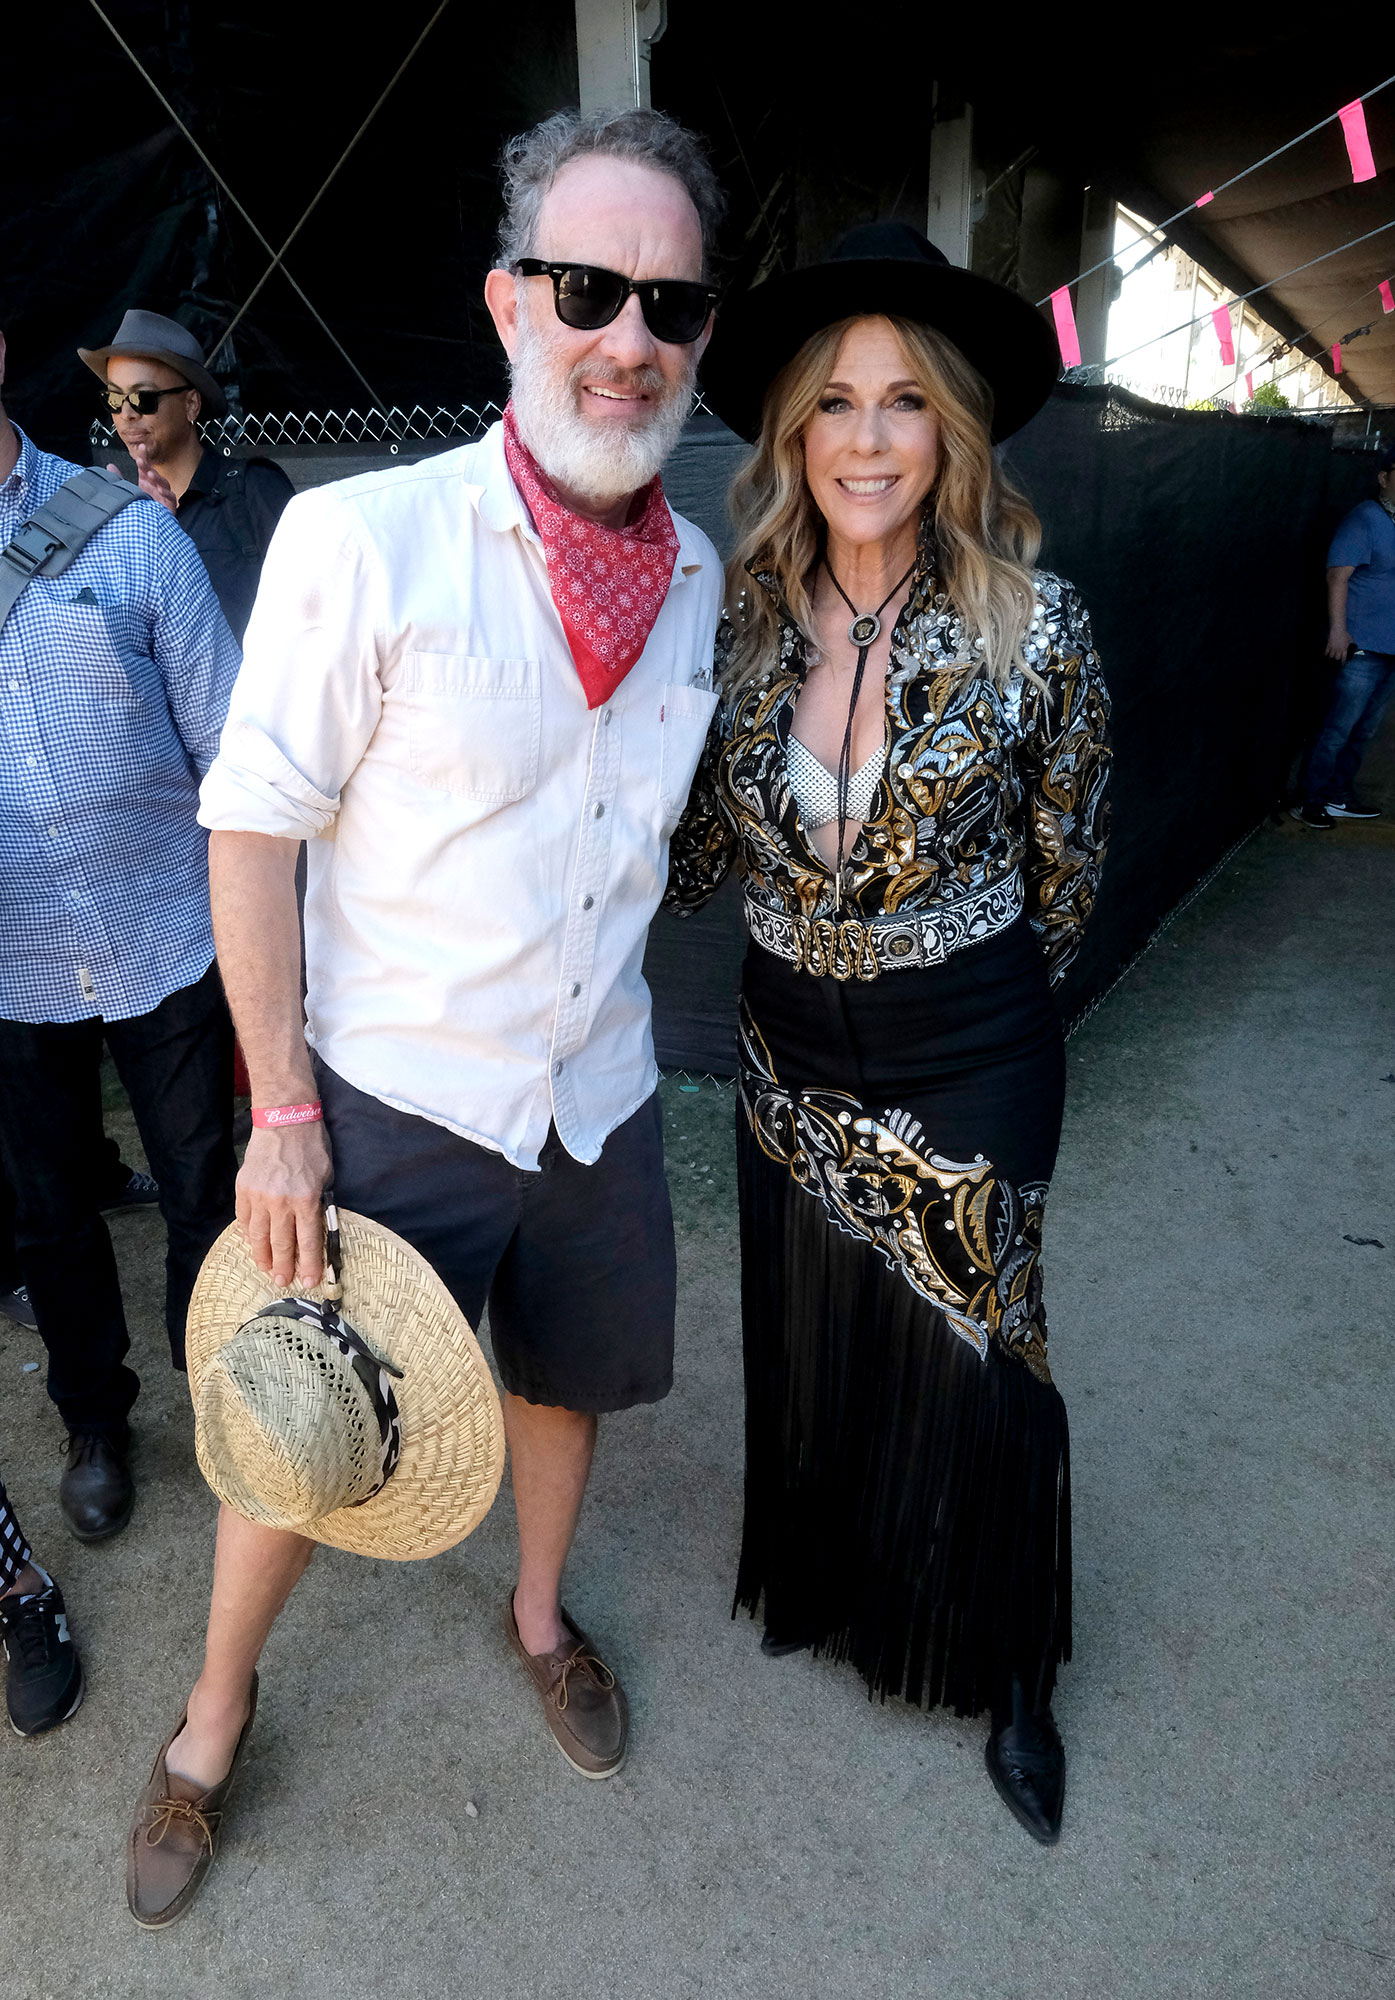 APRIL 27: Tom Hanks and Rita Wilson attend the 2019 Stagecoach Festival at Empire Polo Field on April 27, 2019